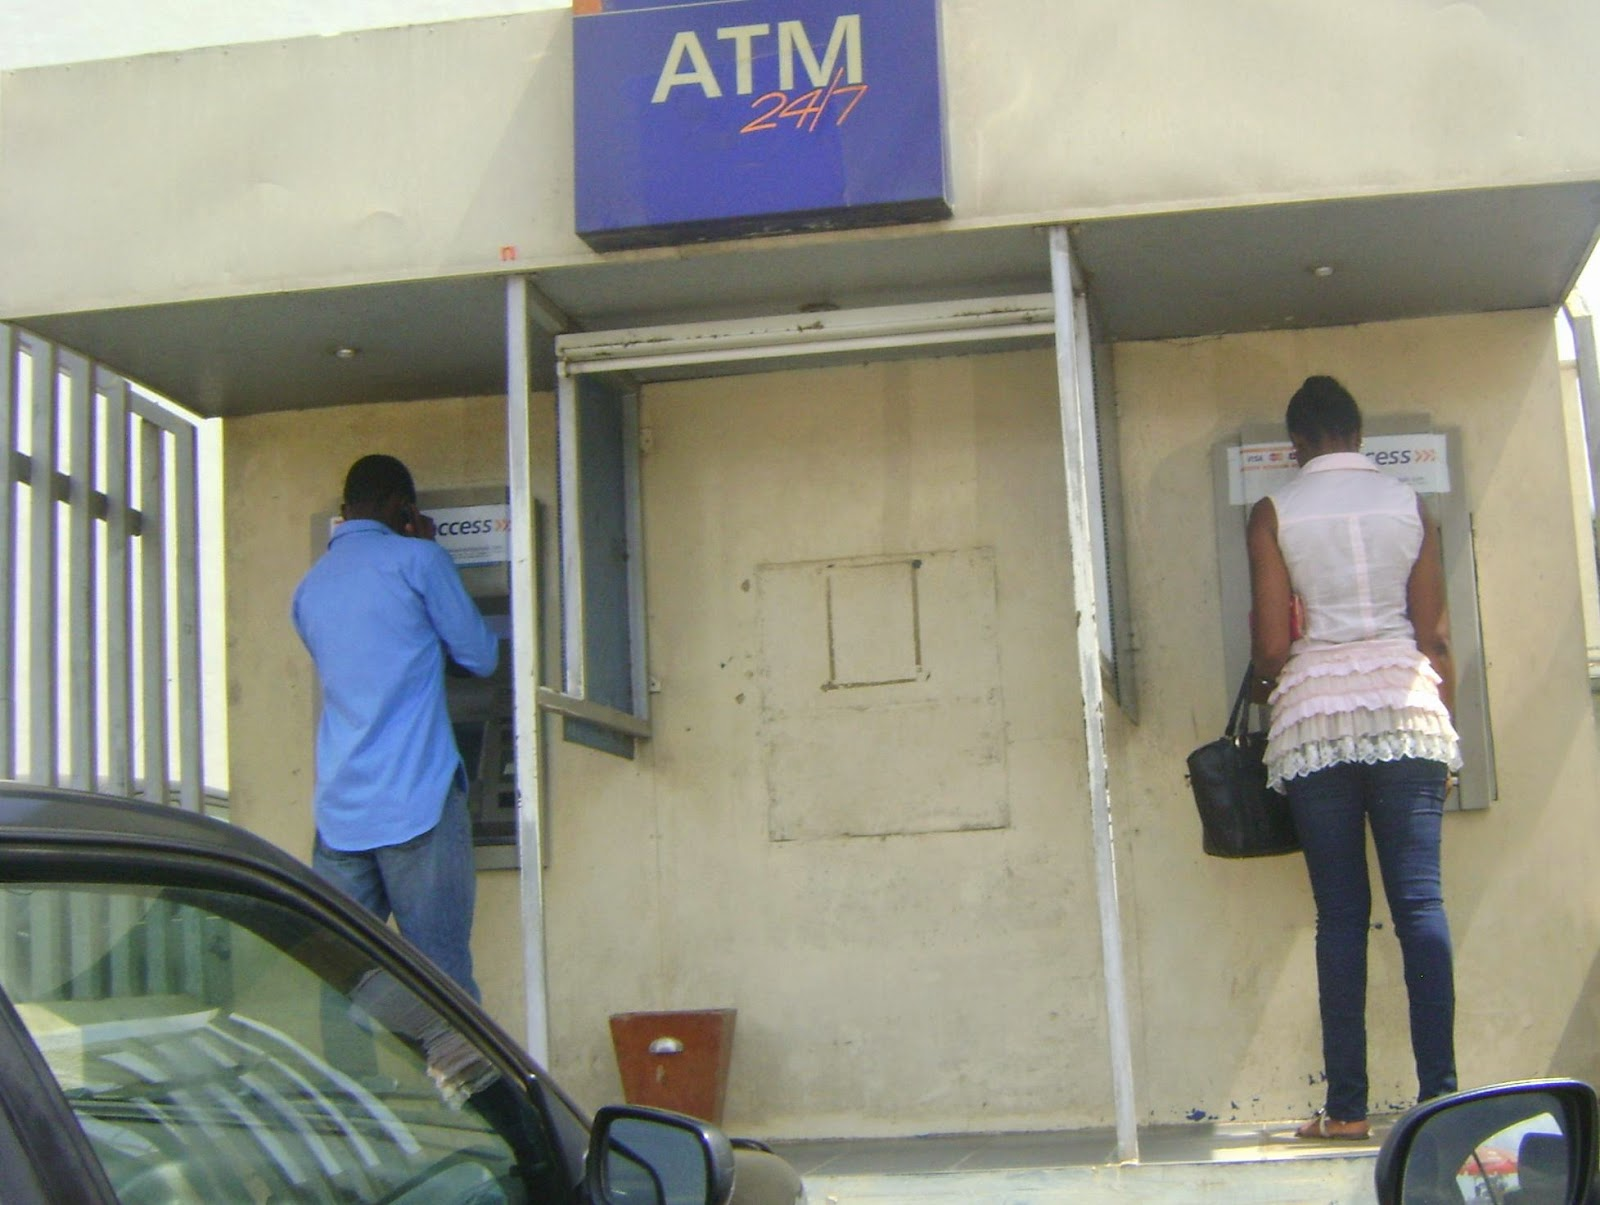 10 tips to avoid being robbed when using an ATM machine, a must see!